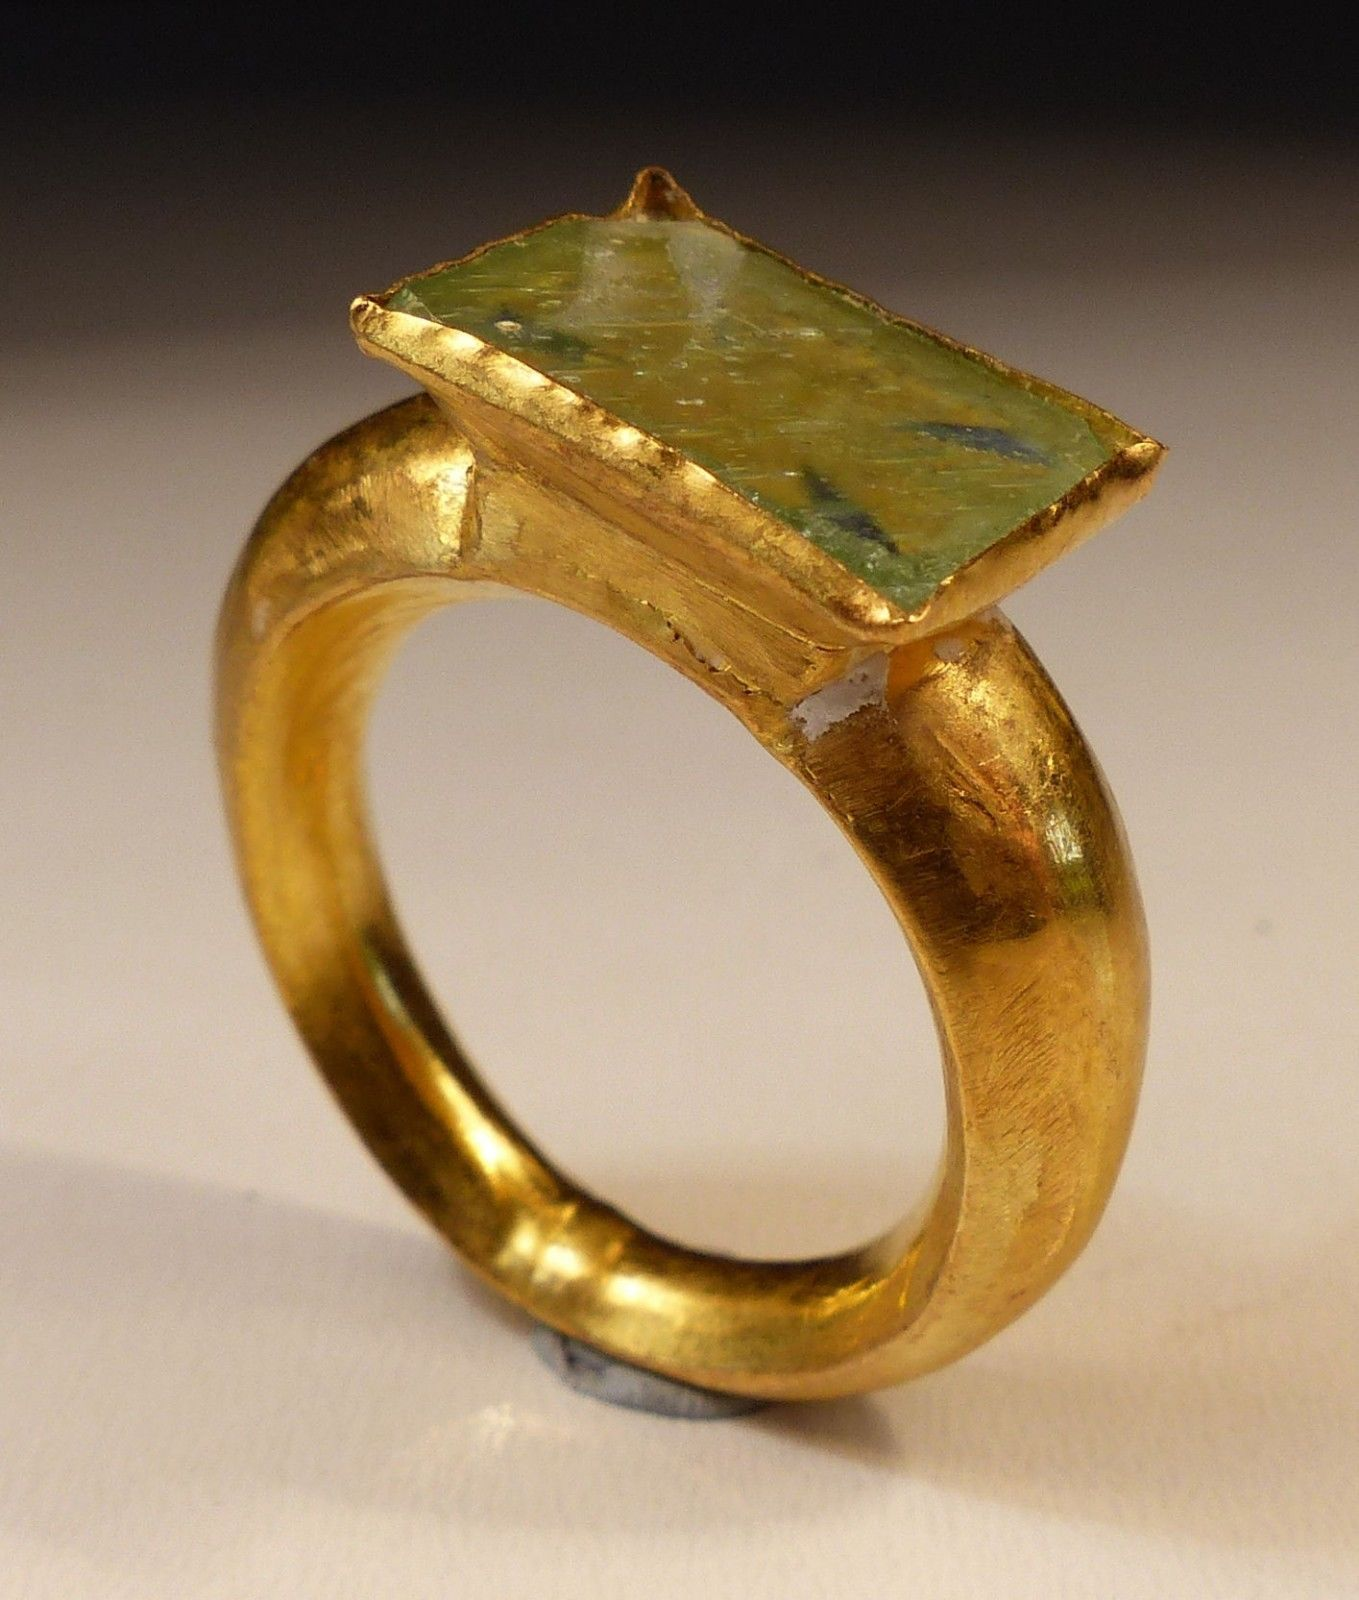 Hollow gold ring having a thick graduated band supporting a square